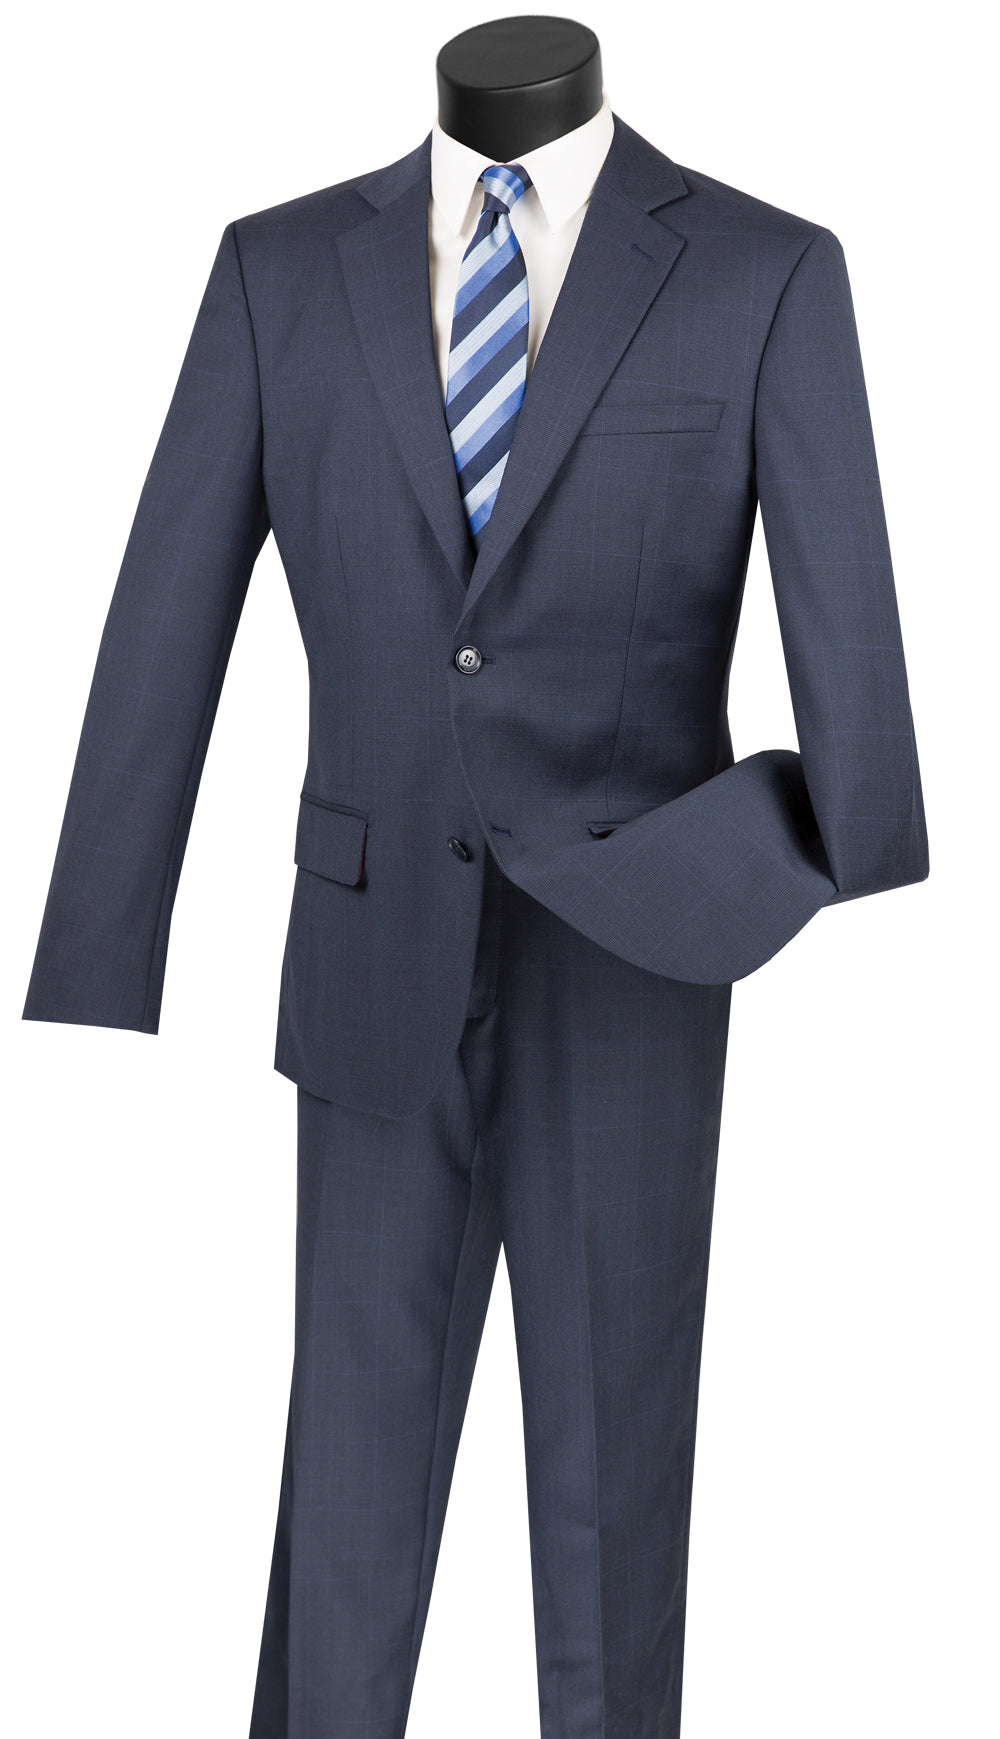 Vinci Men Suit 2WWP1-Navy - Church Suits For Less